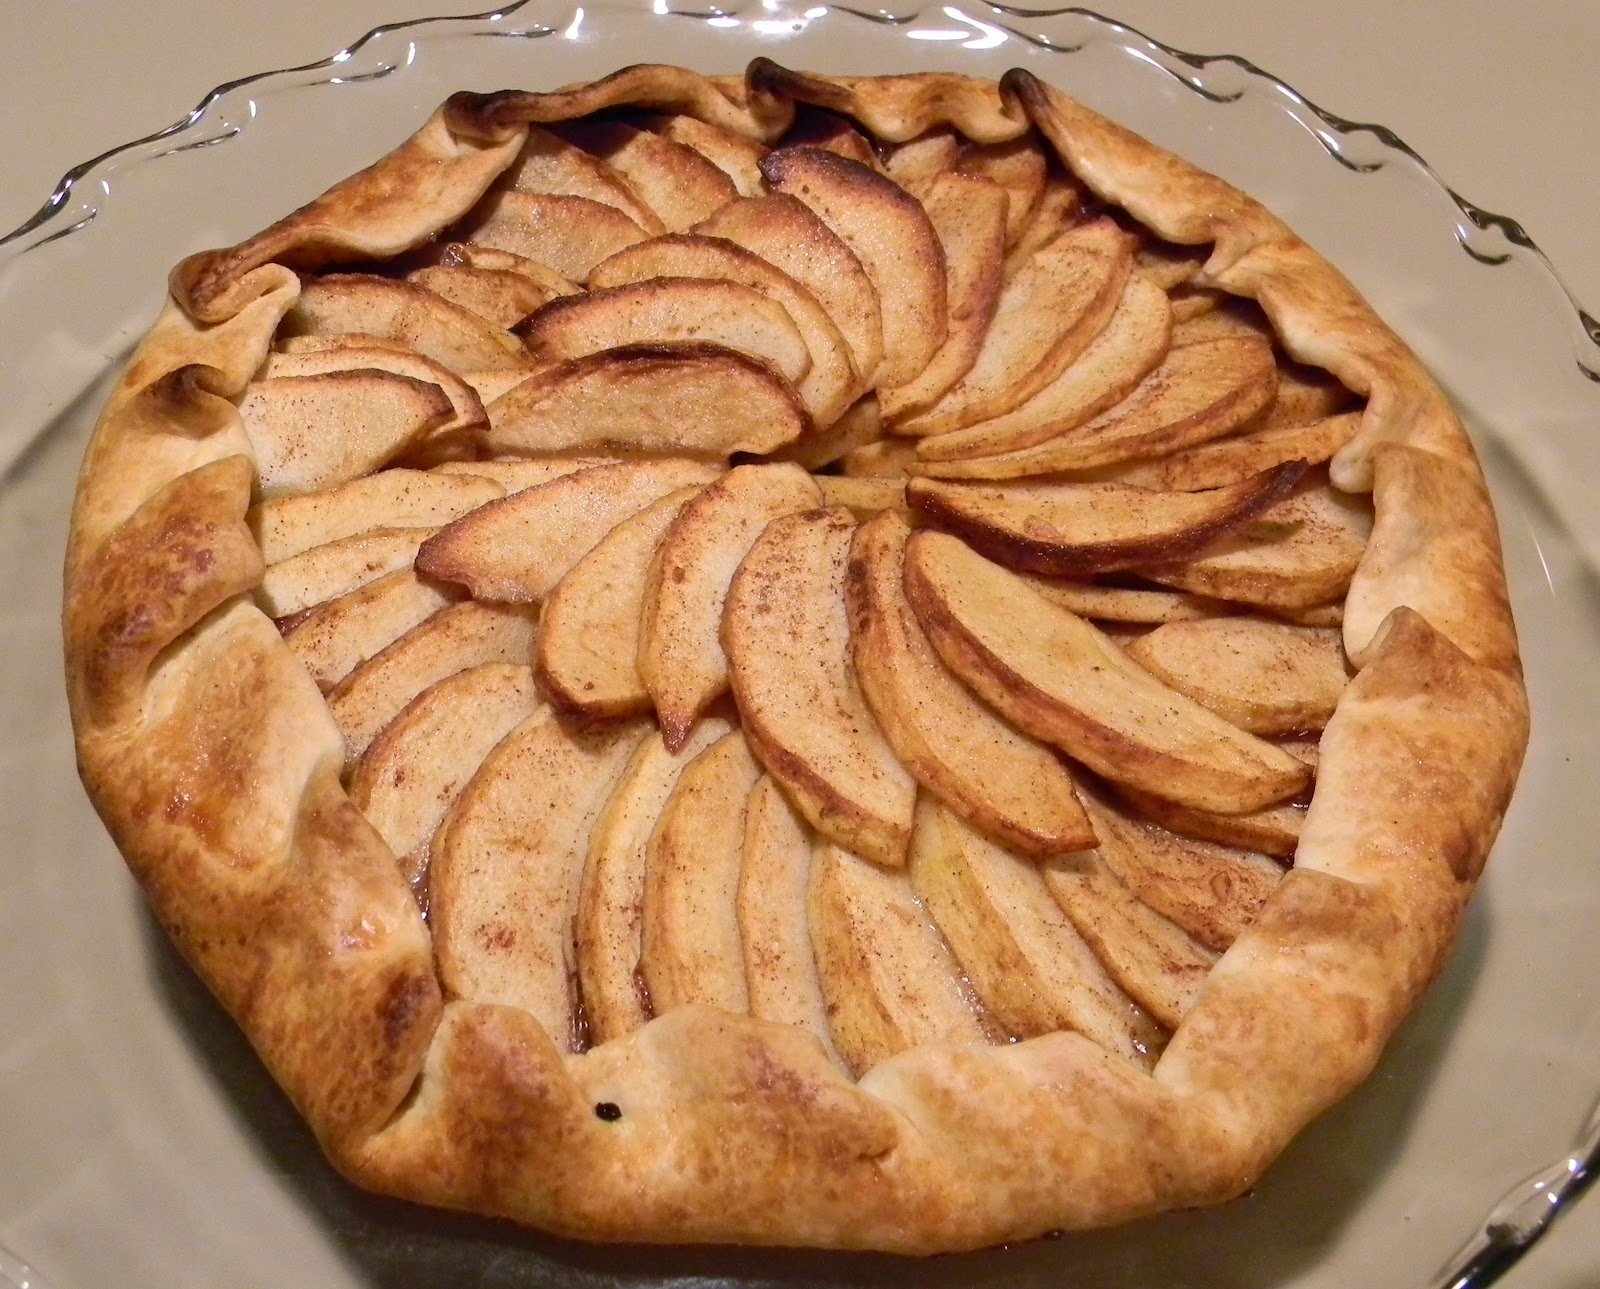 bake it Comments Off on Free Form Apple Tart